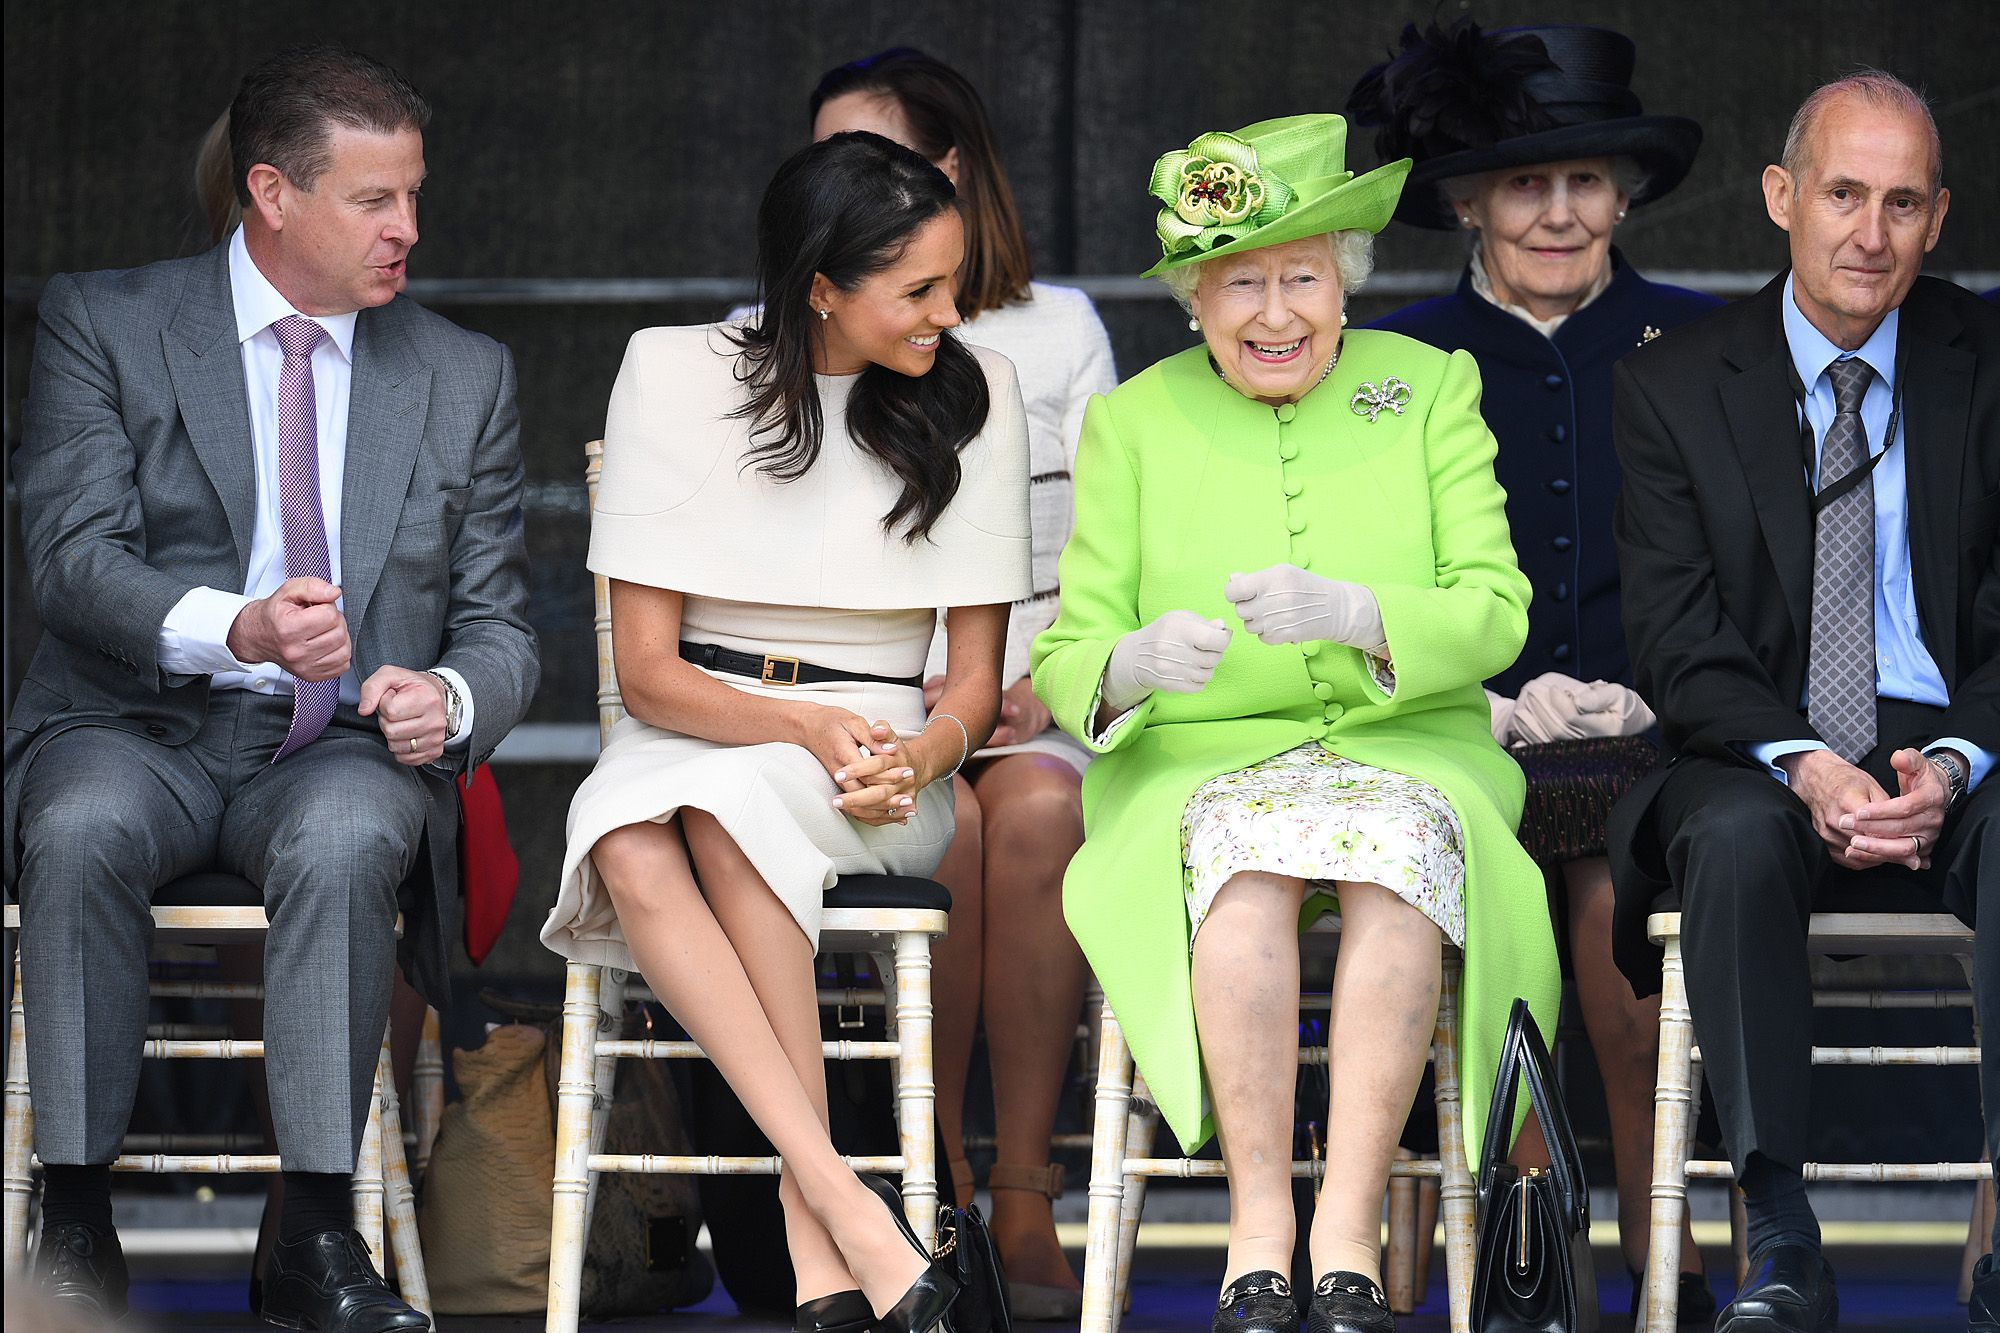 The Duchess And The Queen Meghan Markle And Queen Elizabeth Step Out Together For First Time Meghan Markle Outfits Princess Meghan Prince Harry And Meghan [ 1333 x 2000 Pixel ]